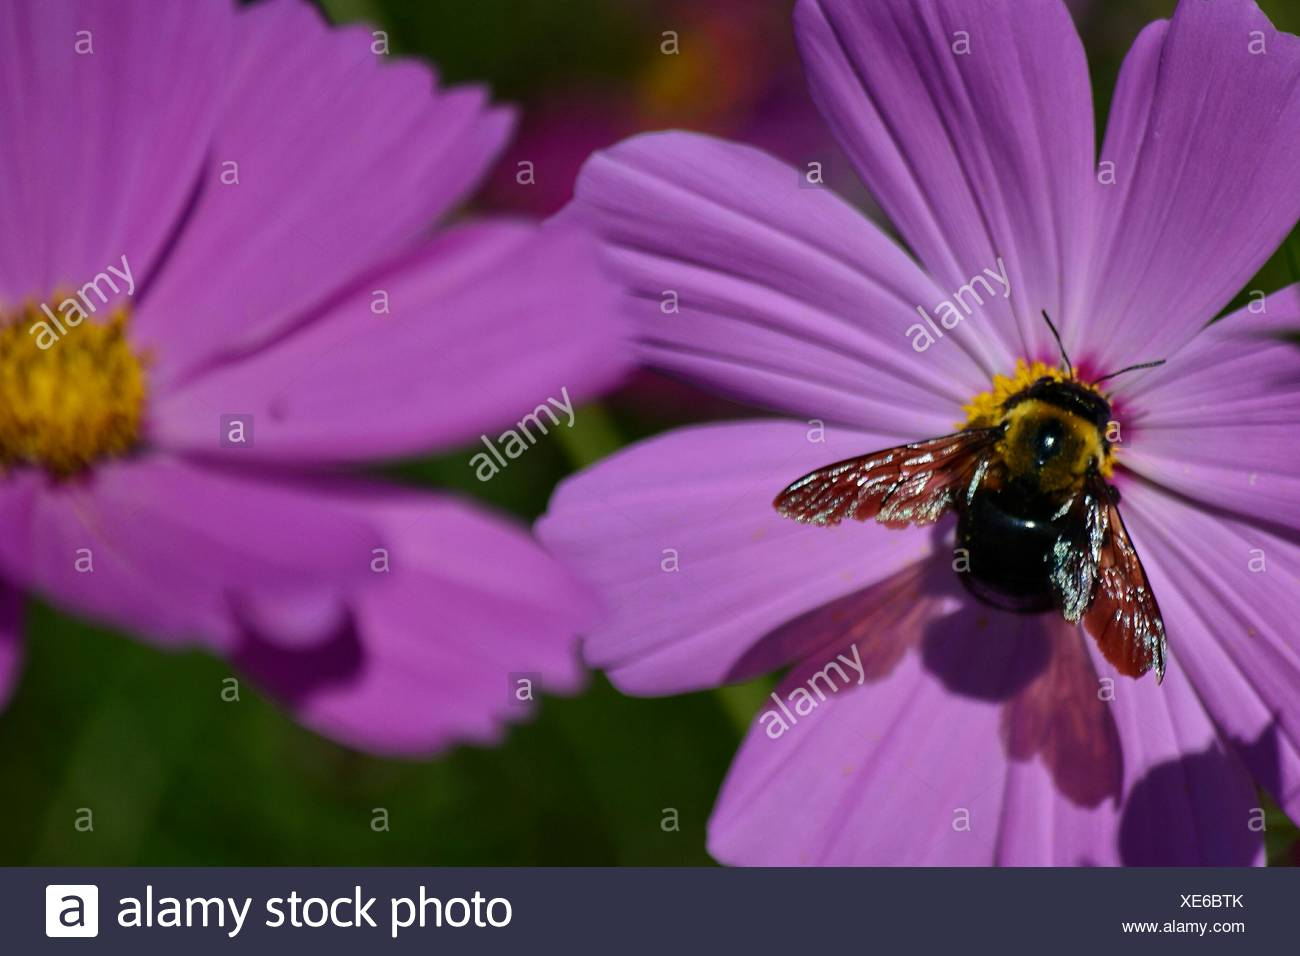 Close-Up Of Honey Bee On Purple Flower - Stock Image